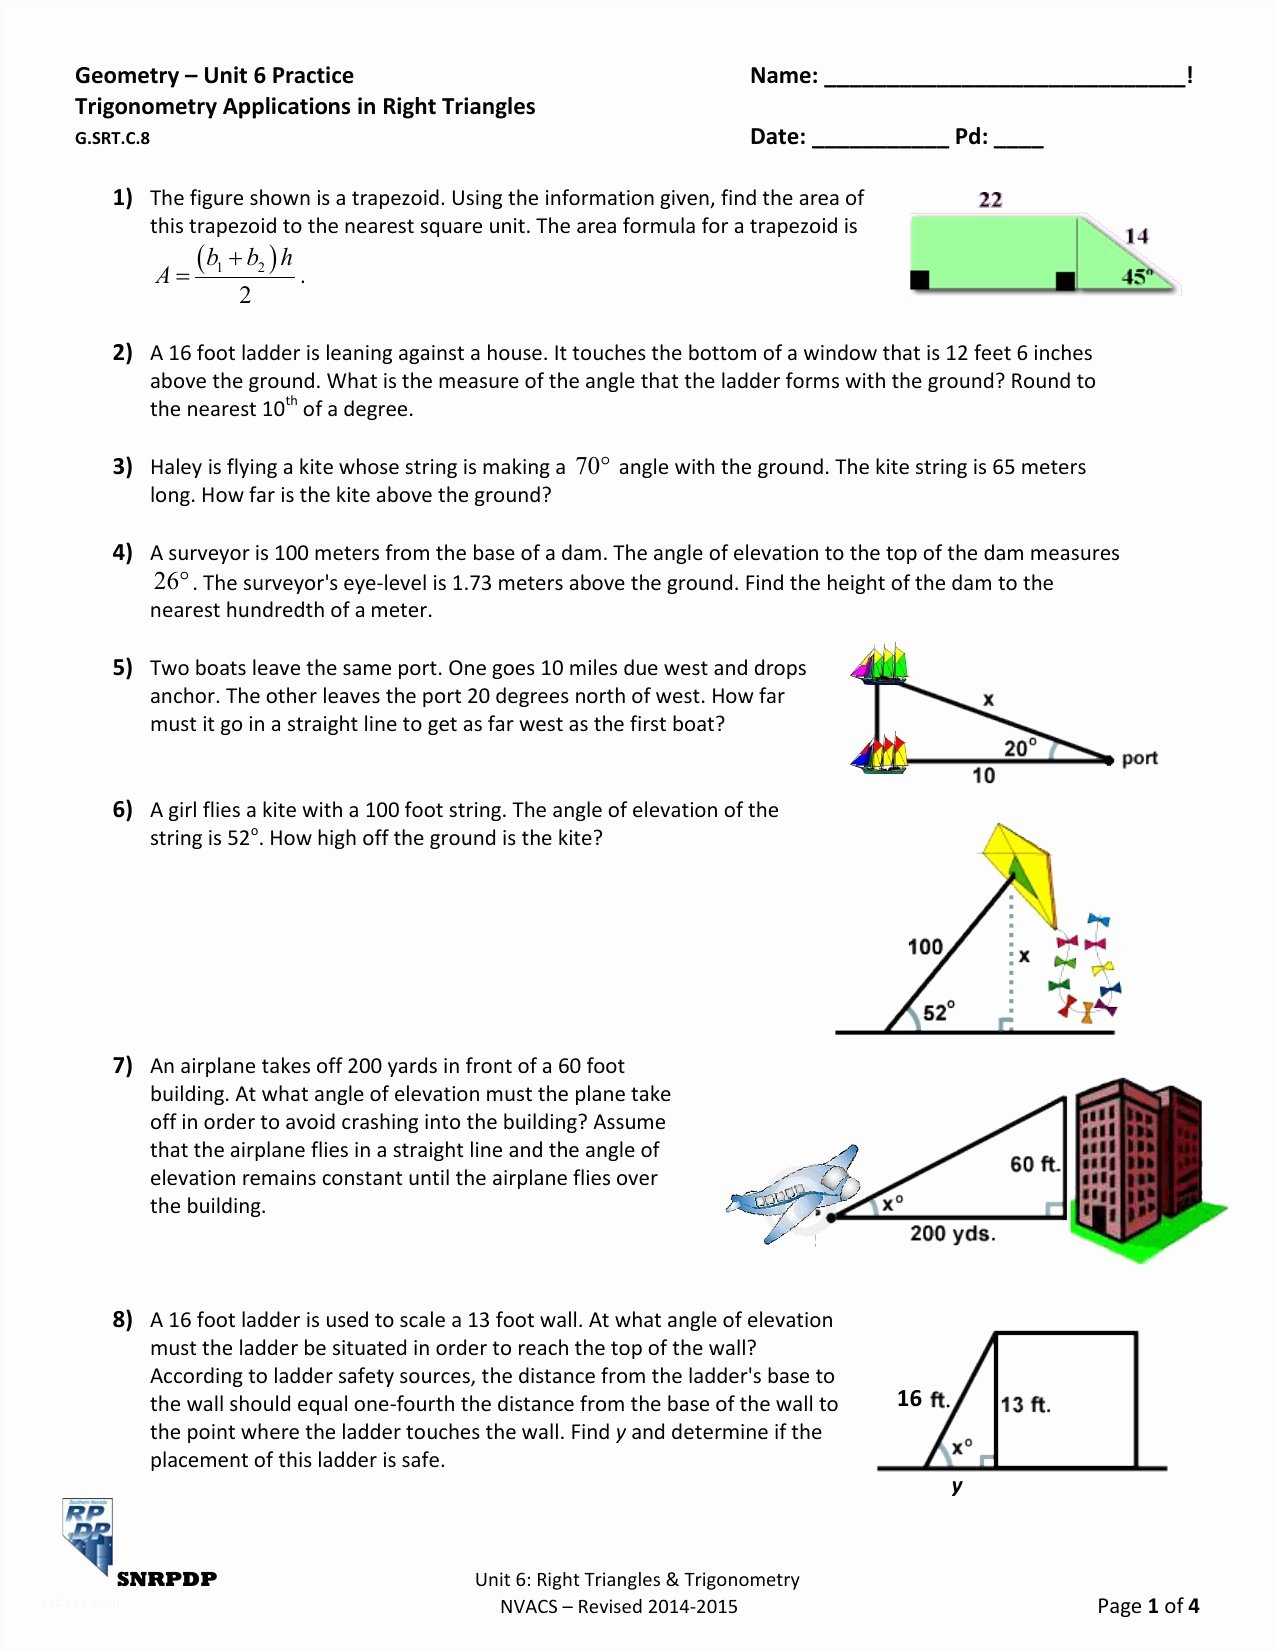 Right Triangle Word Problems Worksheet Fresh Trig Word Problems Worksheet Funresearcher